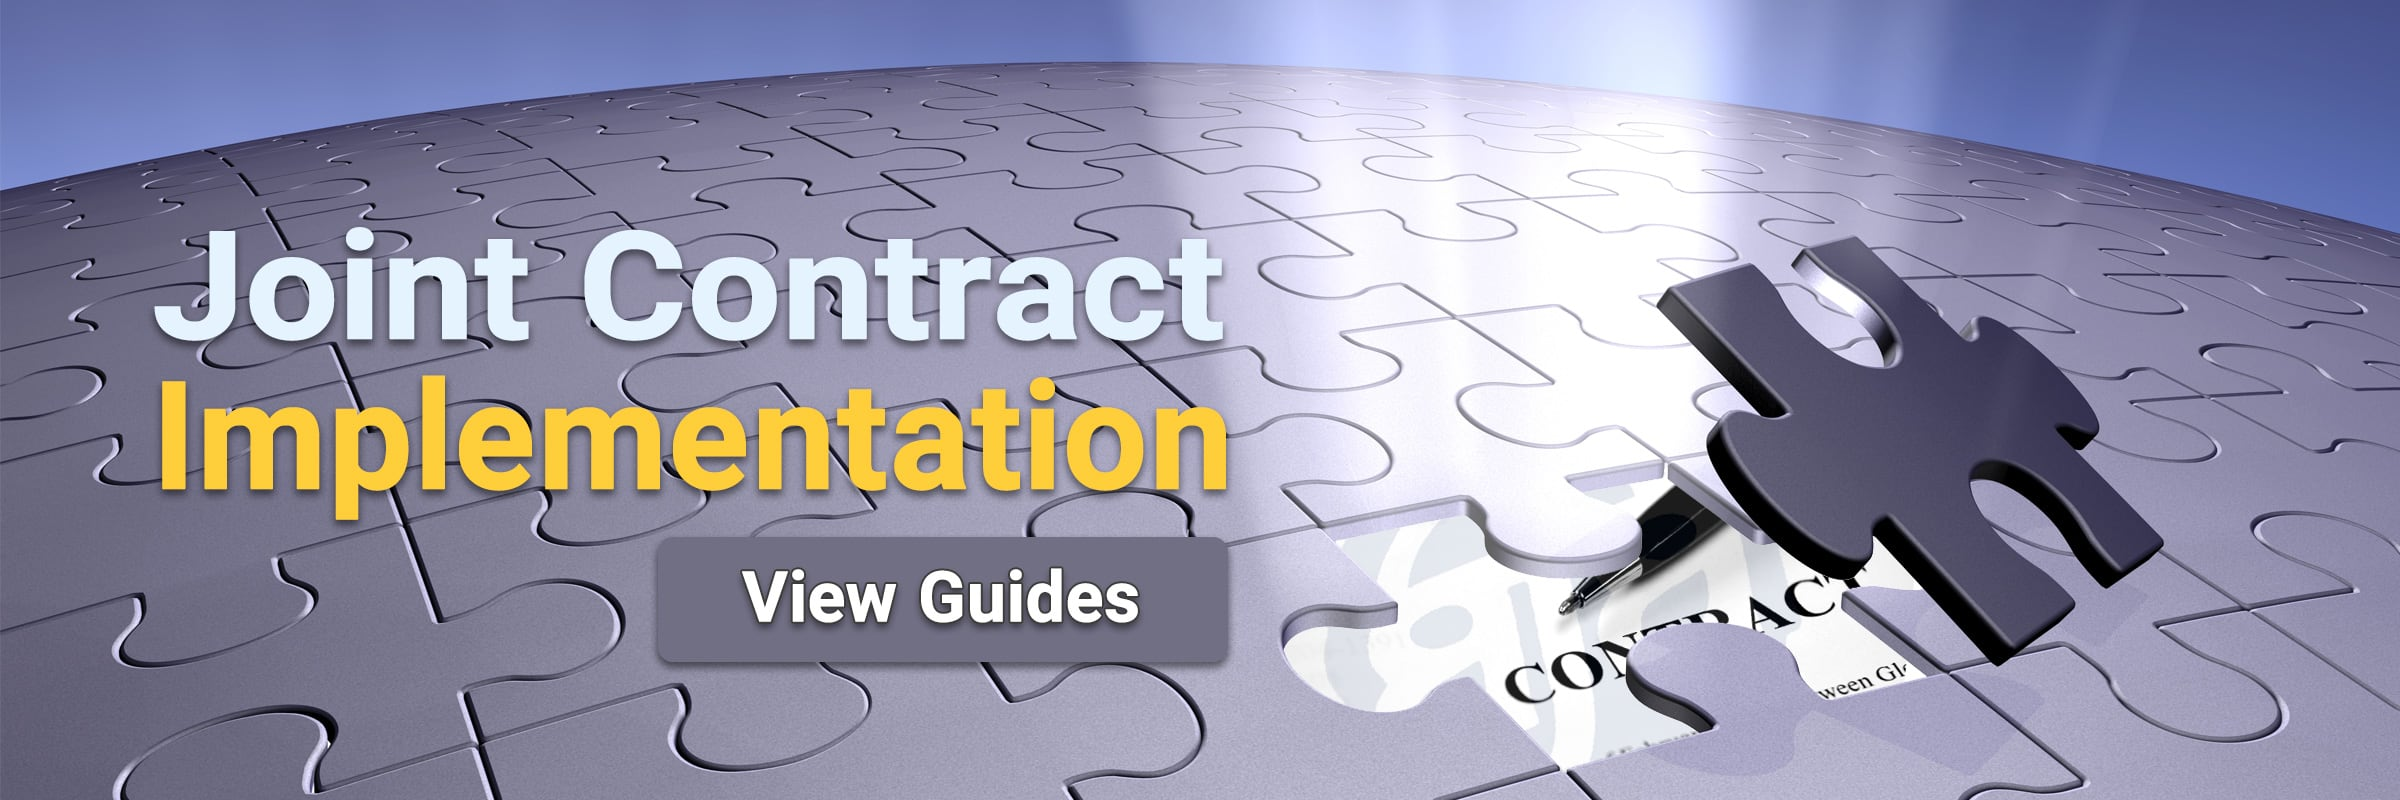 joint contract implementation